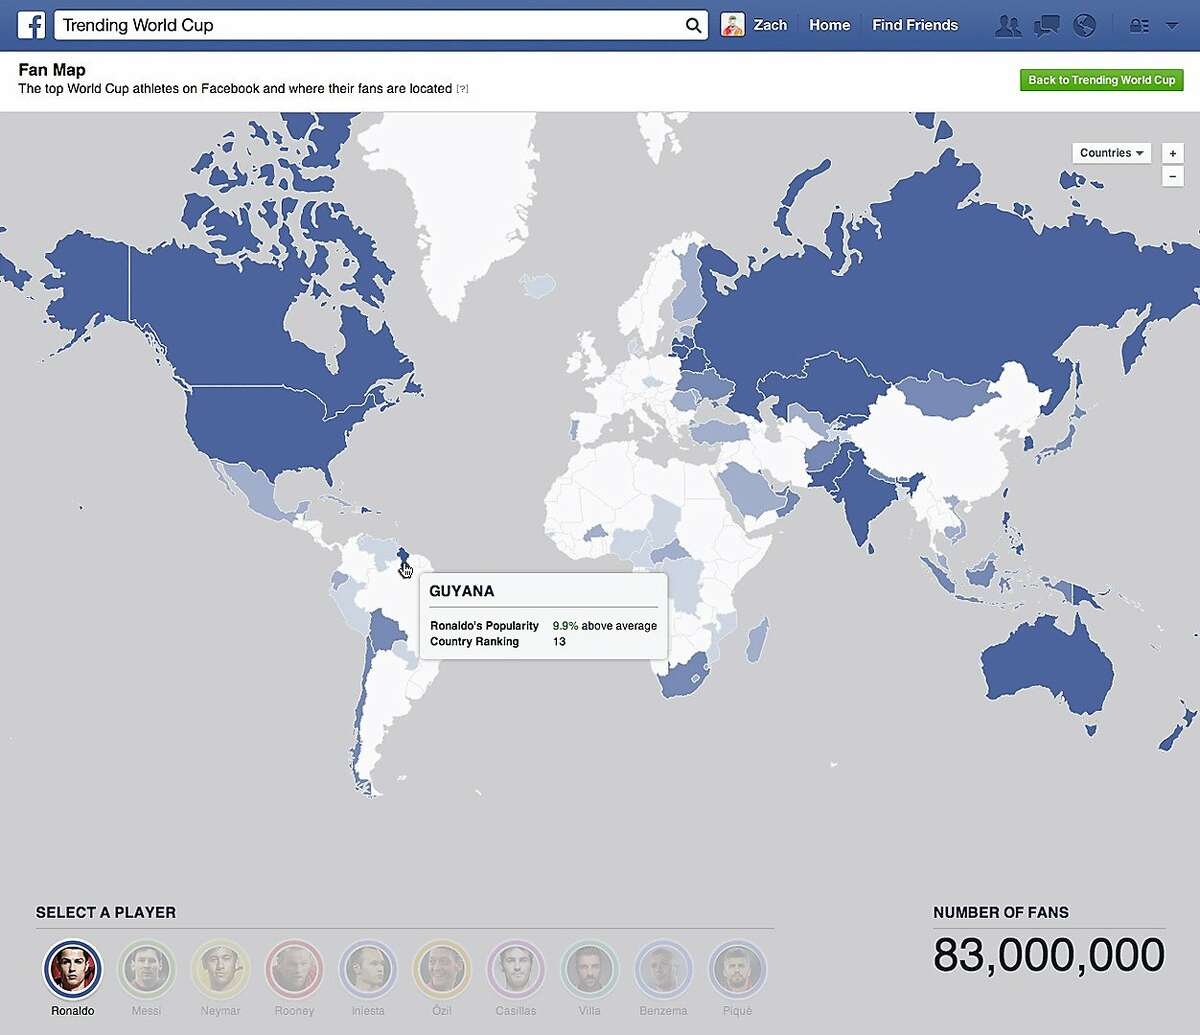 """This undated image provided by Facebook shows the social network's interactive map for the World Cup. Facebook users will be able to keep track of their favorite teams and players throughout the tournament in a special World Cup section on the site called """"Trending World Cup."""" Available on the Web as well as mobile devices, the hub will include the latest scores, game highlights as well as a feed with tournament-related posts from friends, players and teams. (AP Photo/Facebook)"""